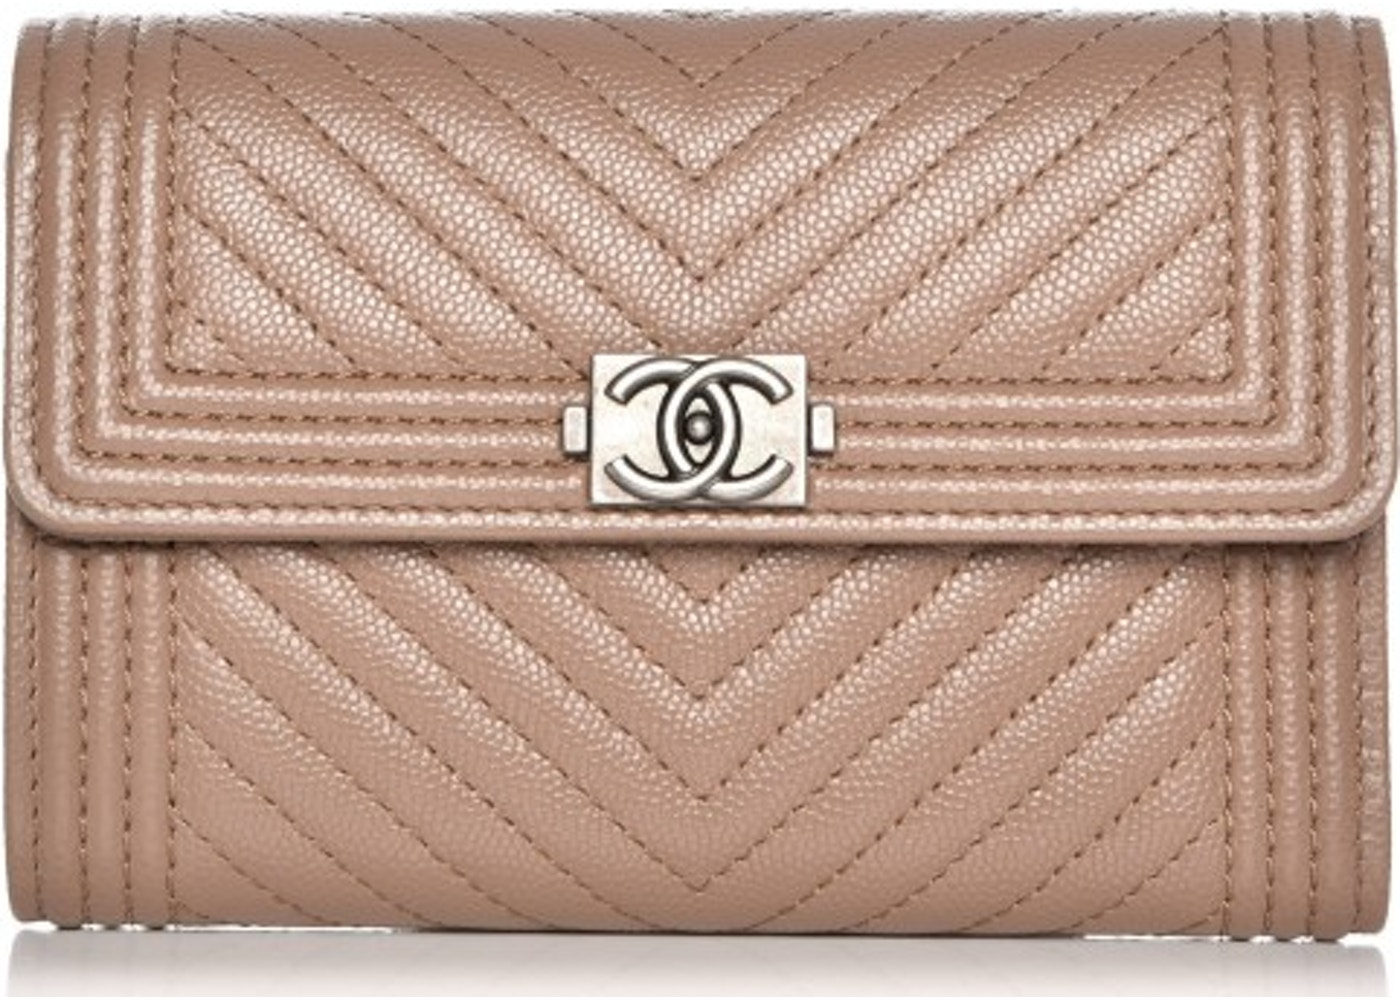 39b35e3df8ee51 Chanel Boy Flap Wallet Quilted Chevron Medium Caviar. Quilted Chevron Medium  Caviar